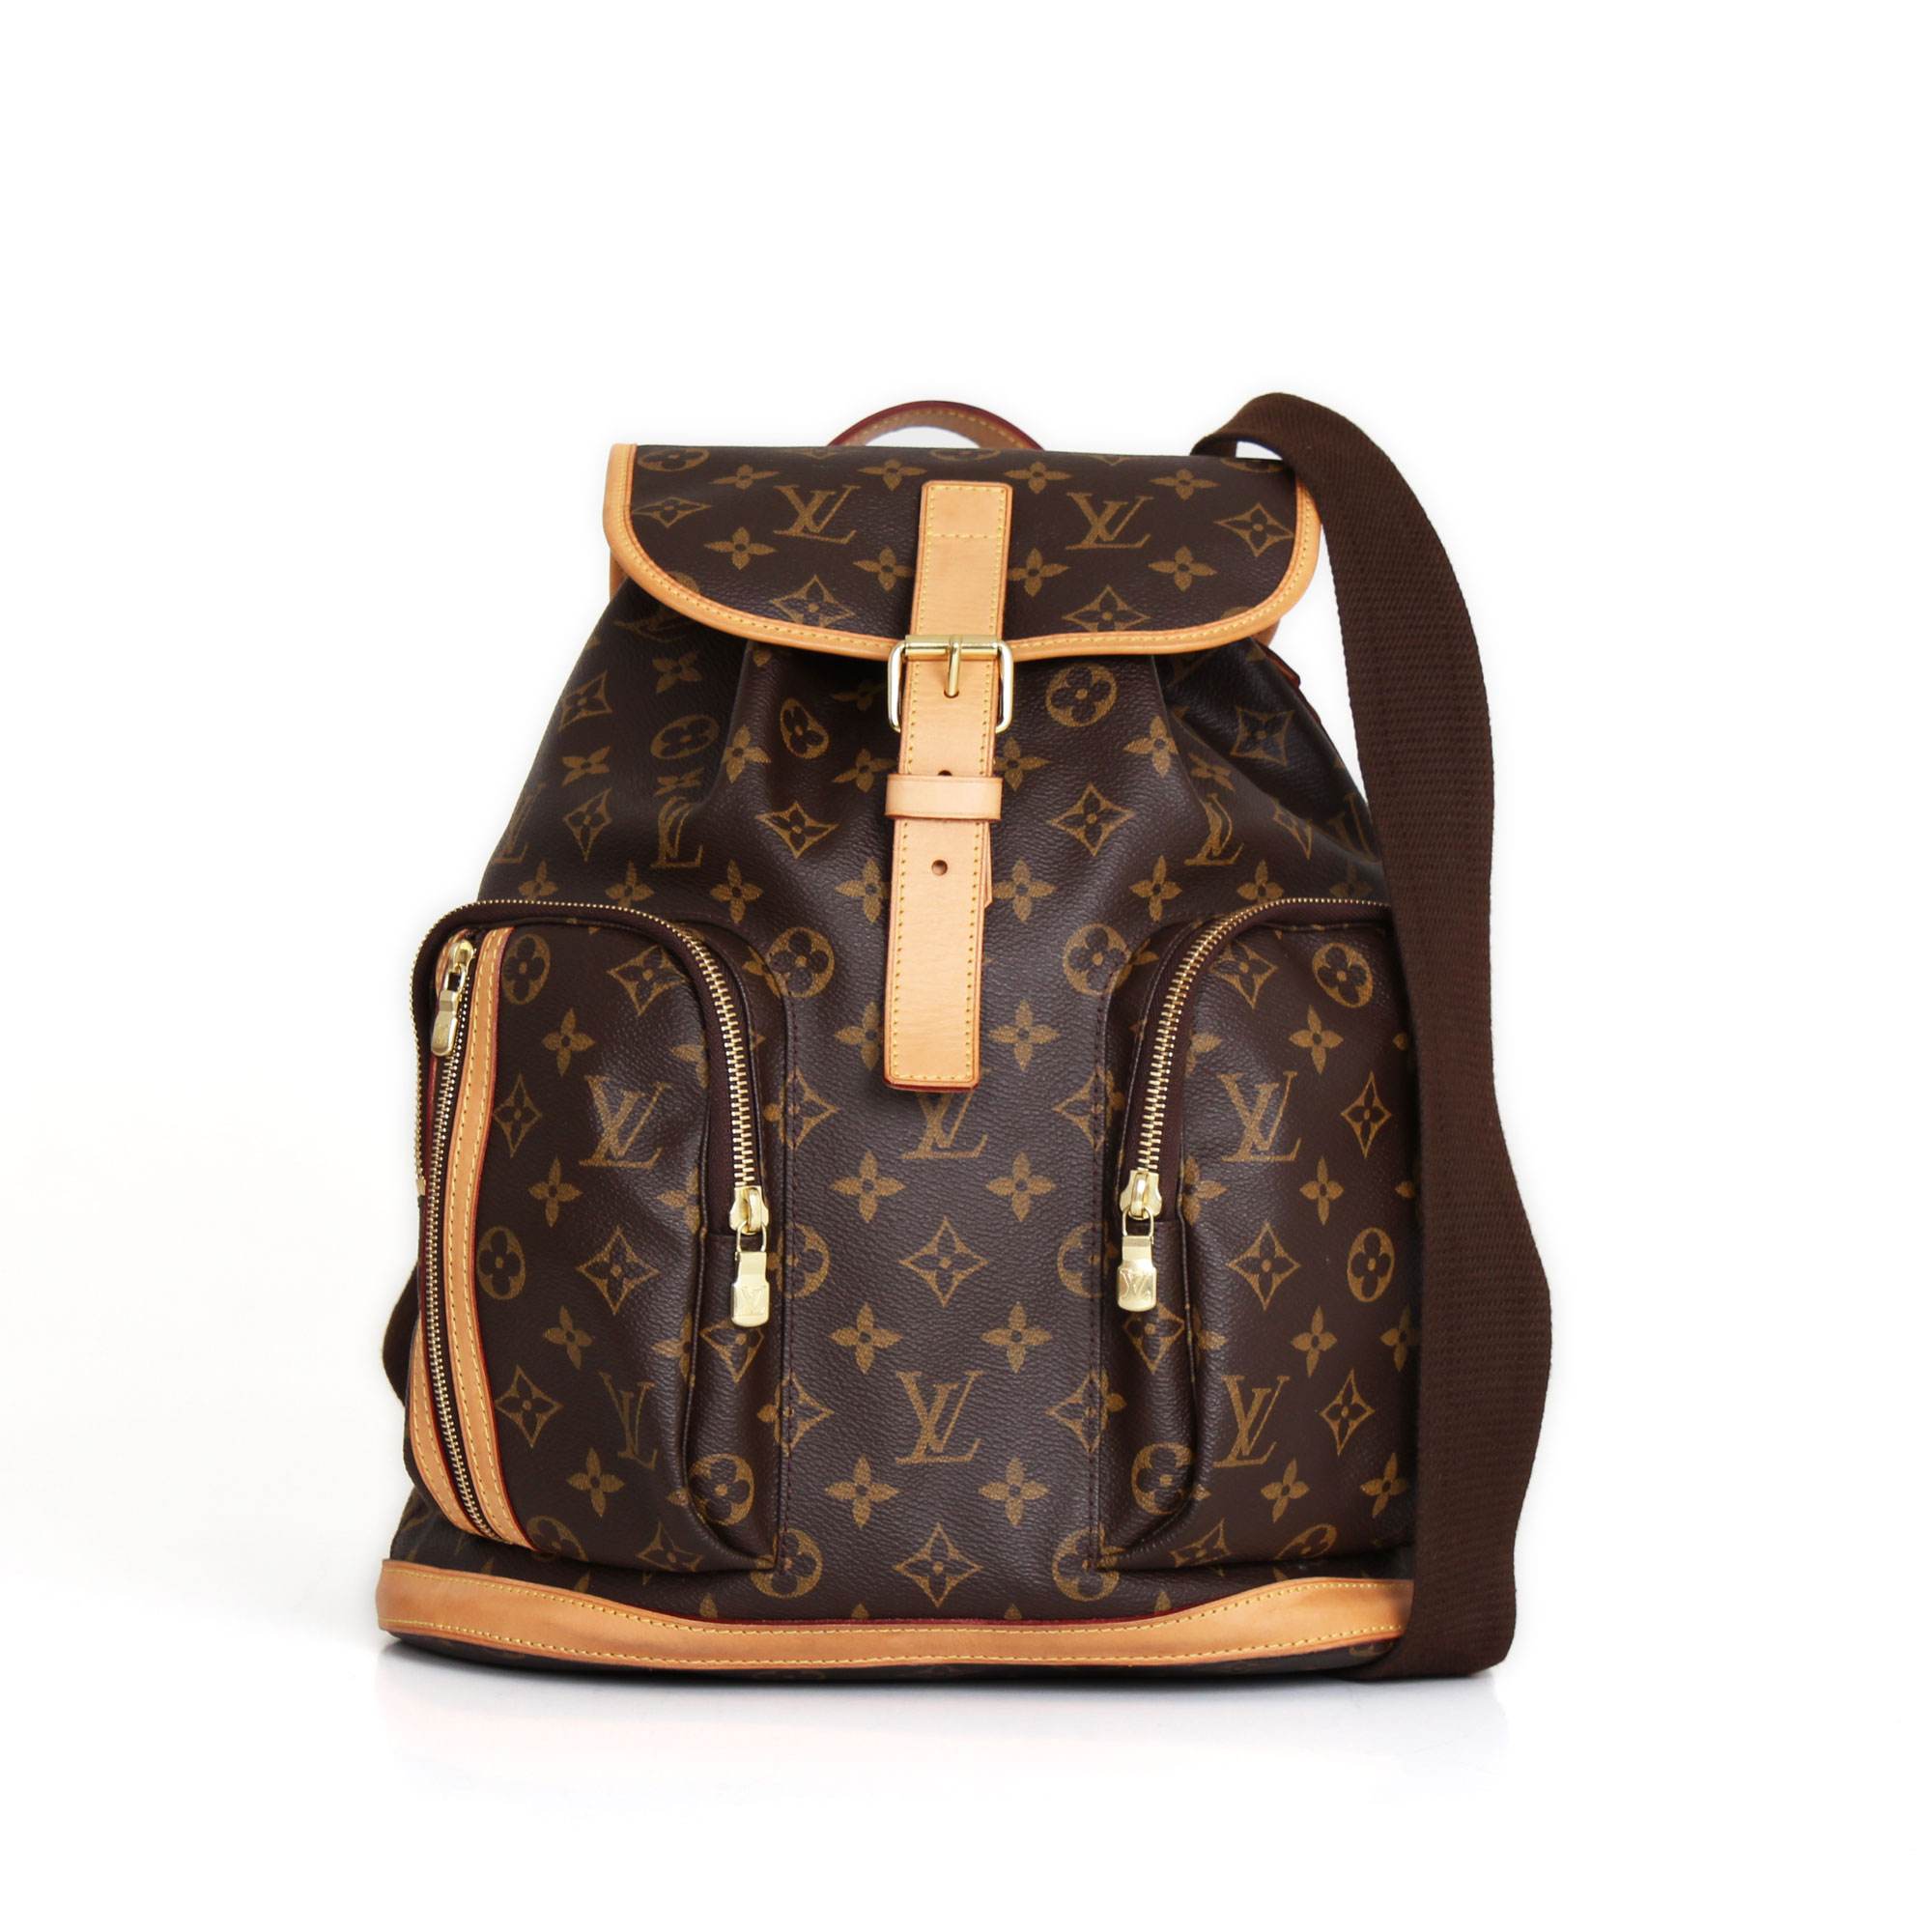 de793ad5c0155 Mochila Louis Vuitton Bosphore GM Monograma